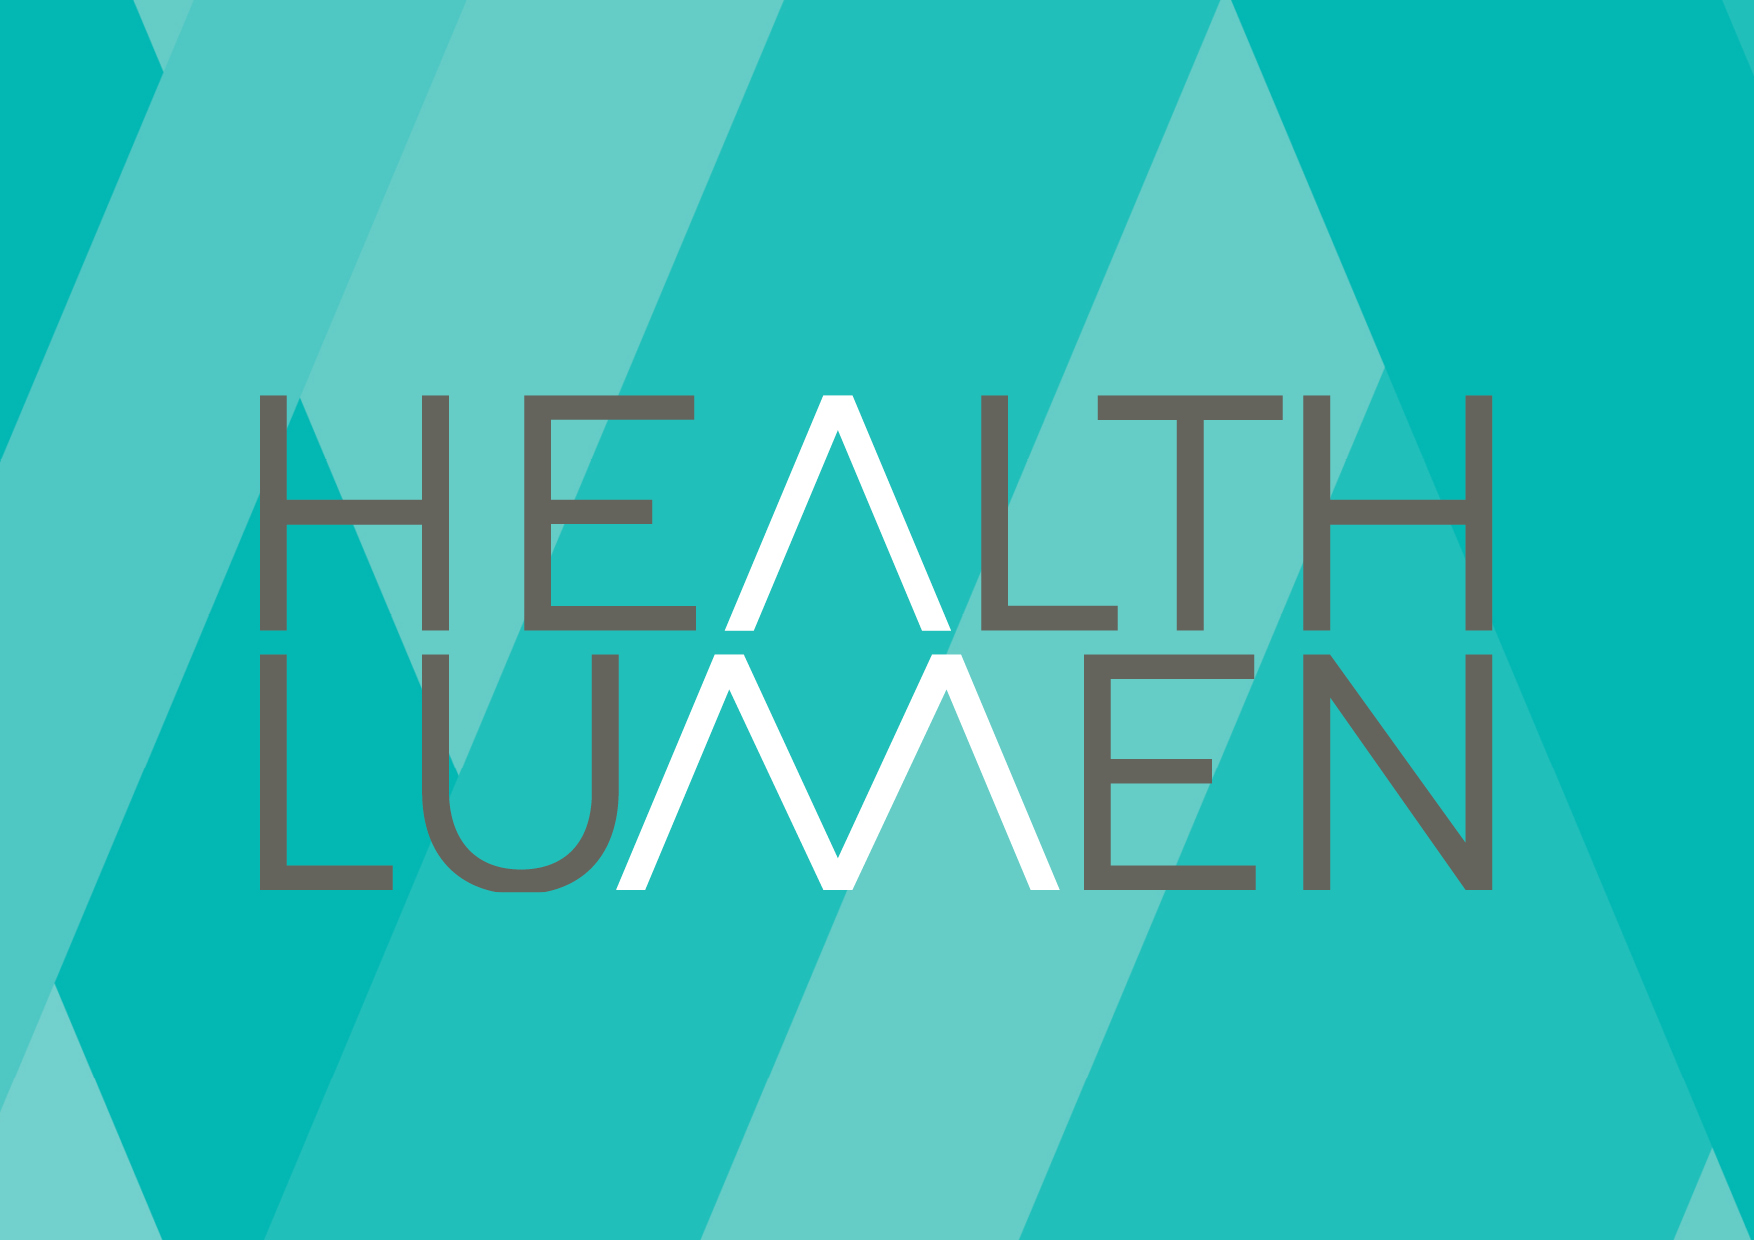 Name, identity and website for a new expert health tech business